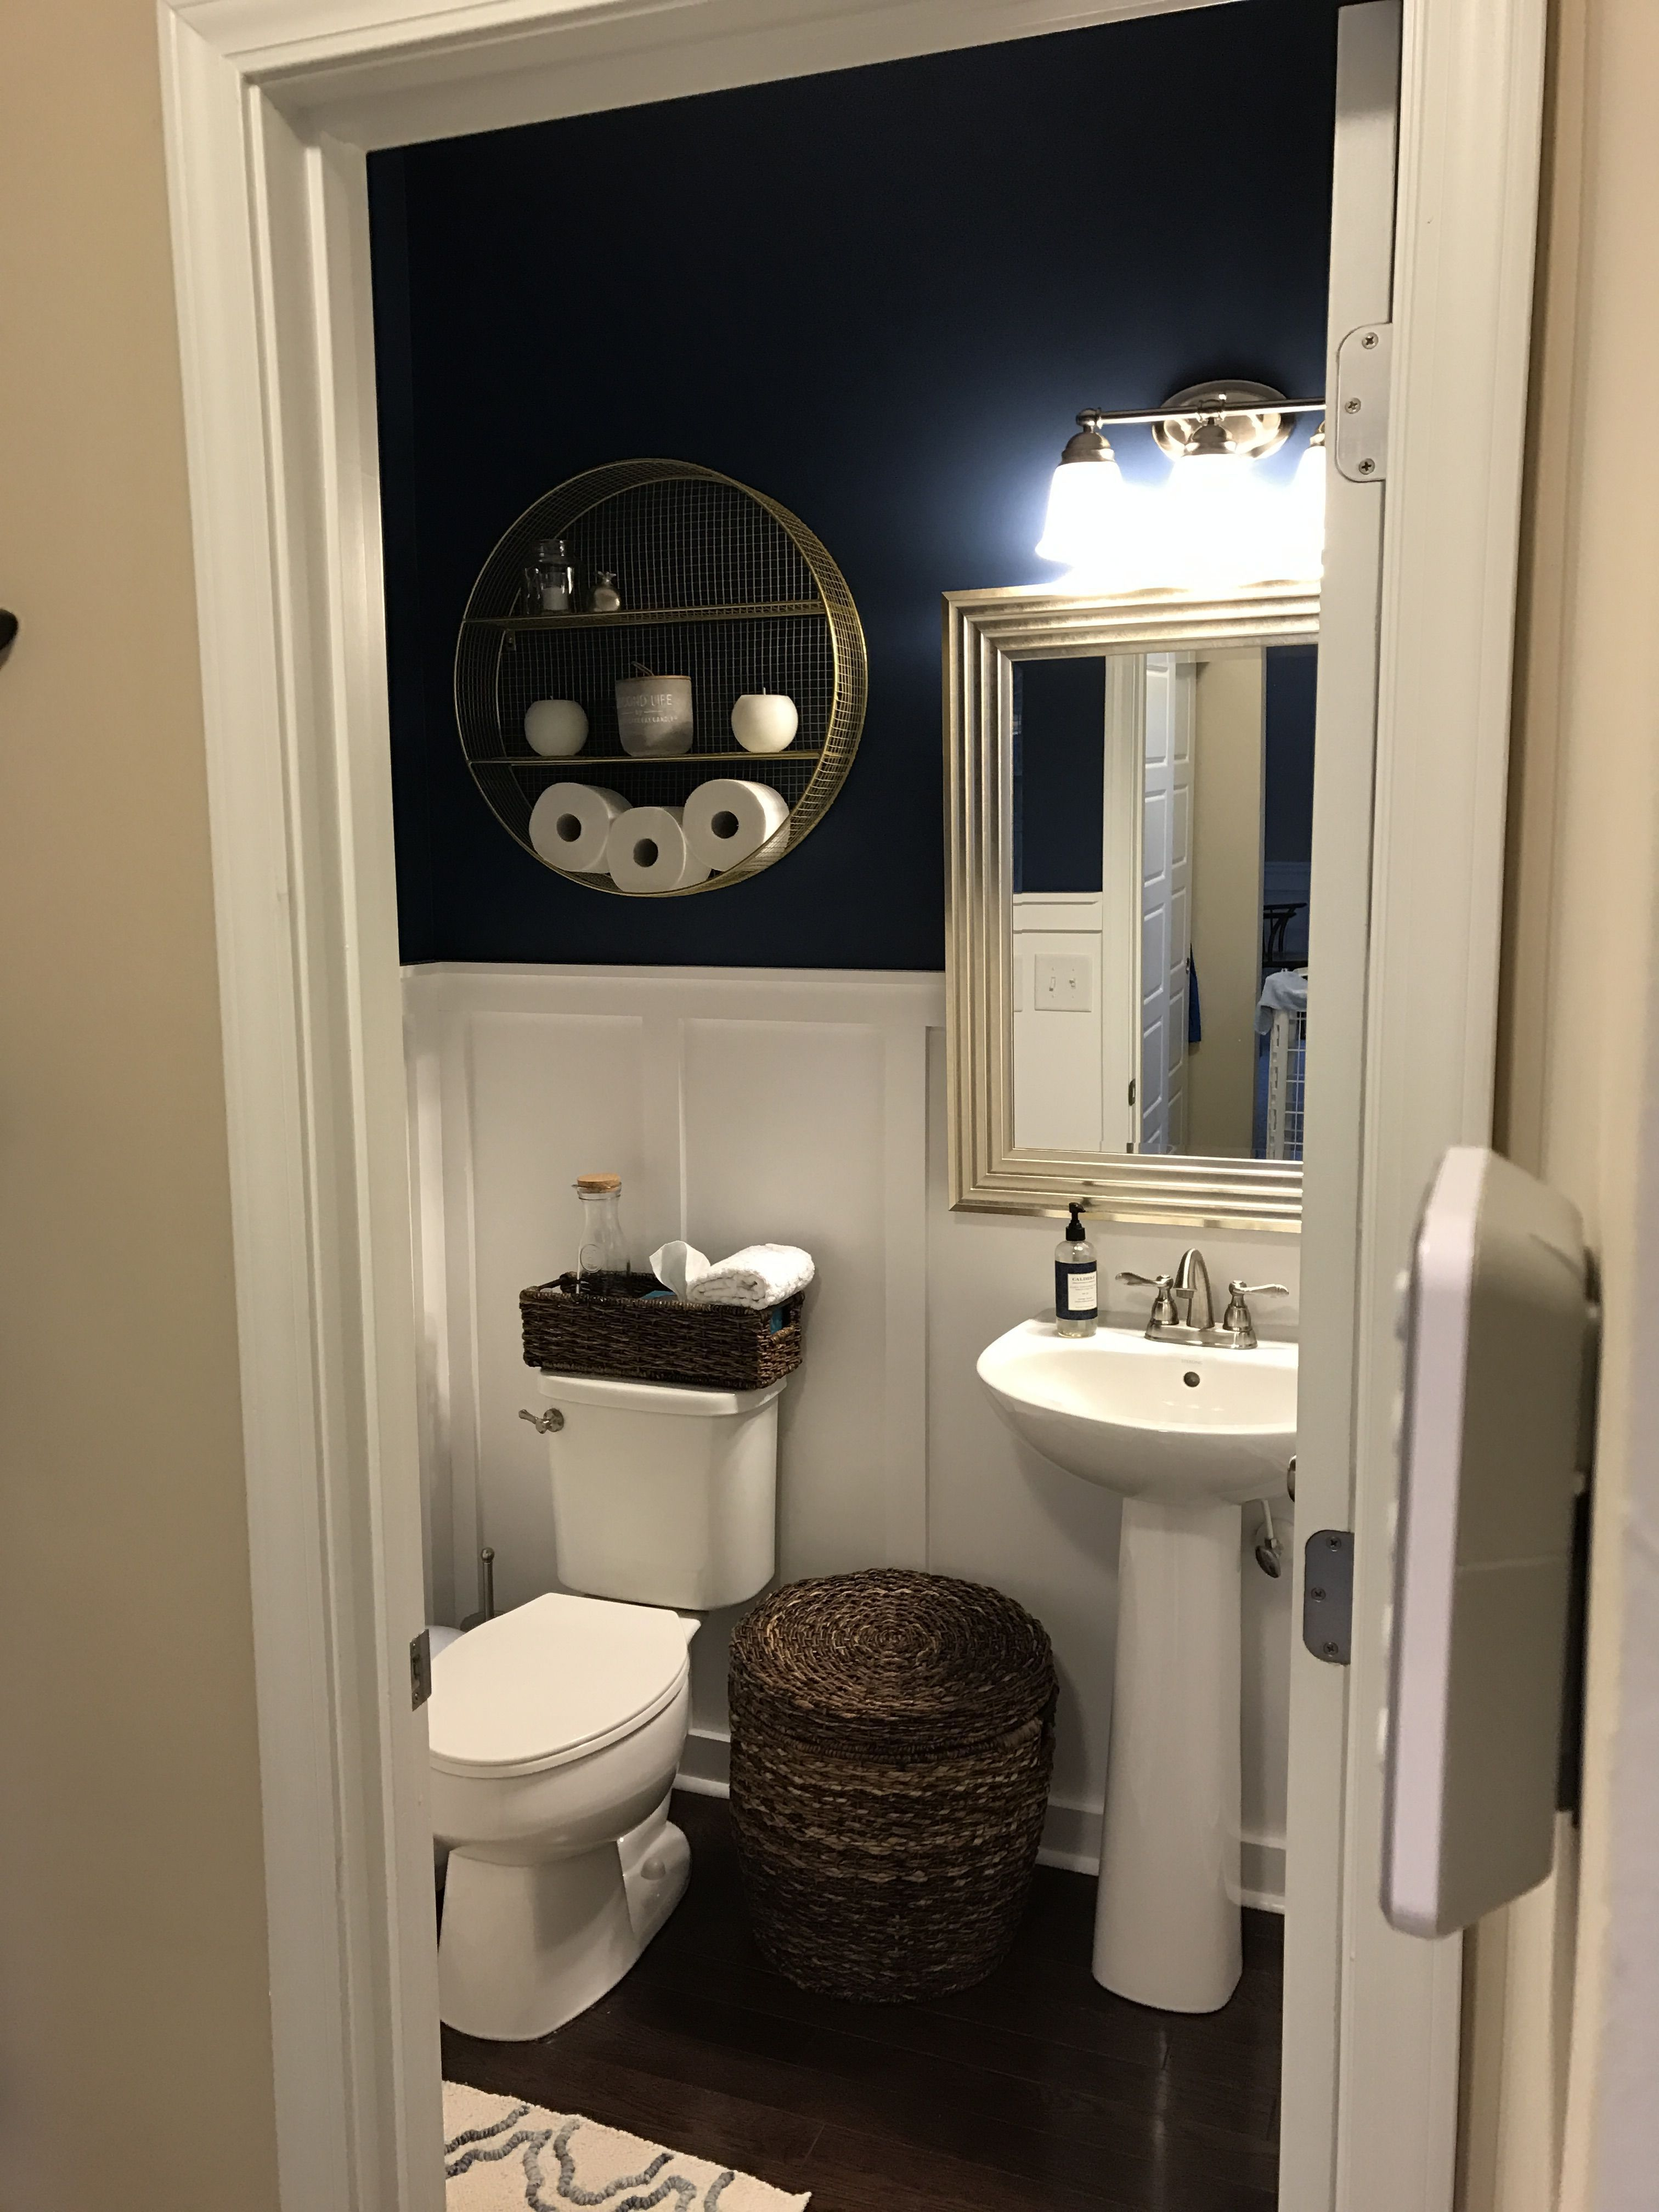 Powder Room Remodel Board And Batten Navy And White Gold And Silver Touches Goldandsilver Half Bathroom Decor Powder Room Remodel Half Bathroom